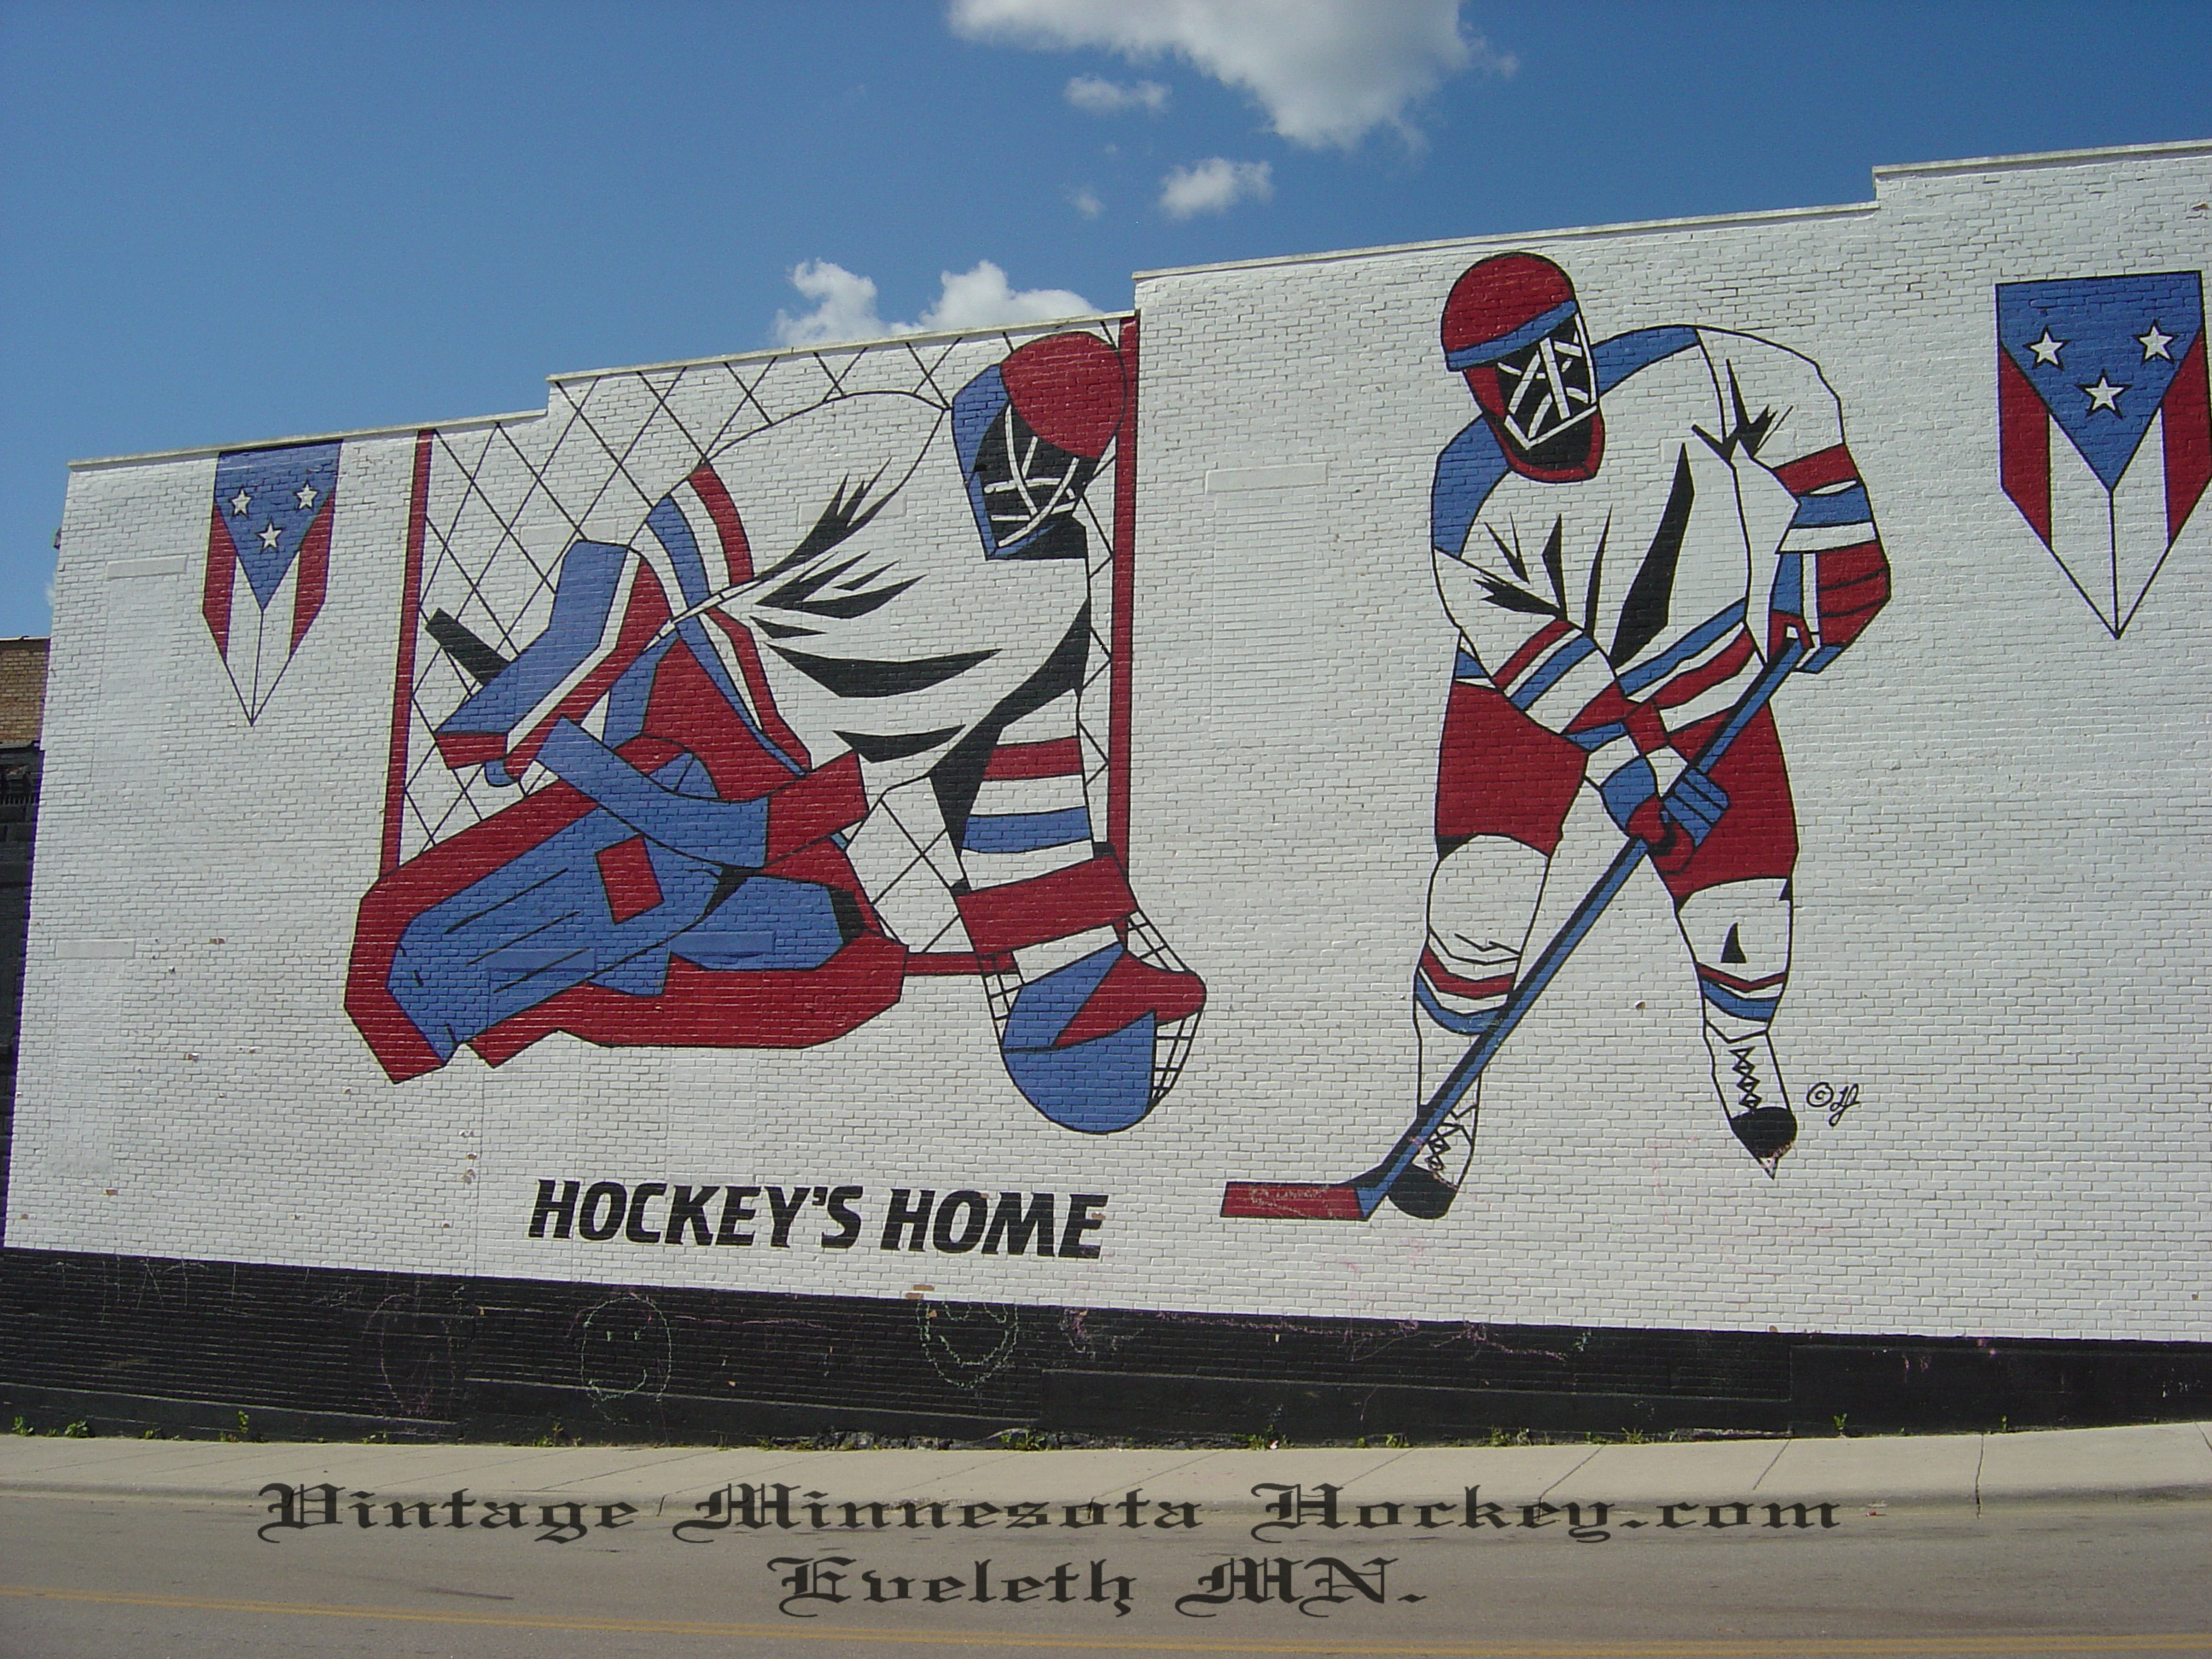 christian brothers hockey on september 16 1995 the stick was dedicated with much fanfare to the hockey players of the past present future and to the spirit of hockey in eveleth